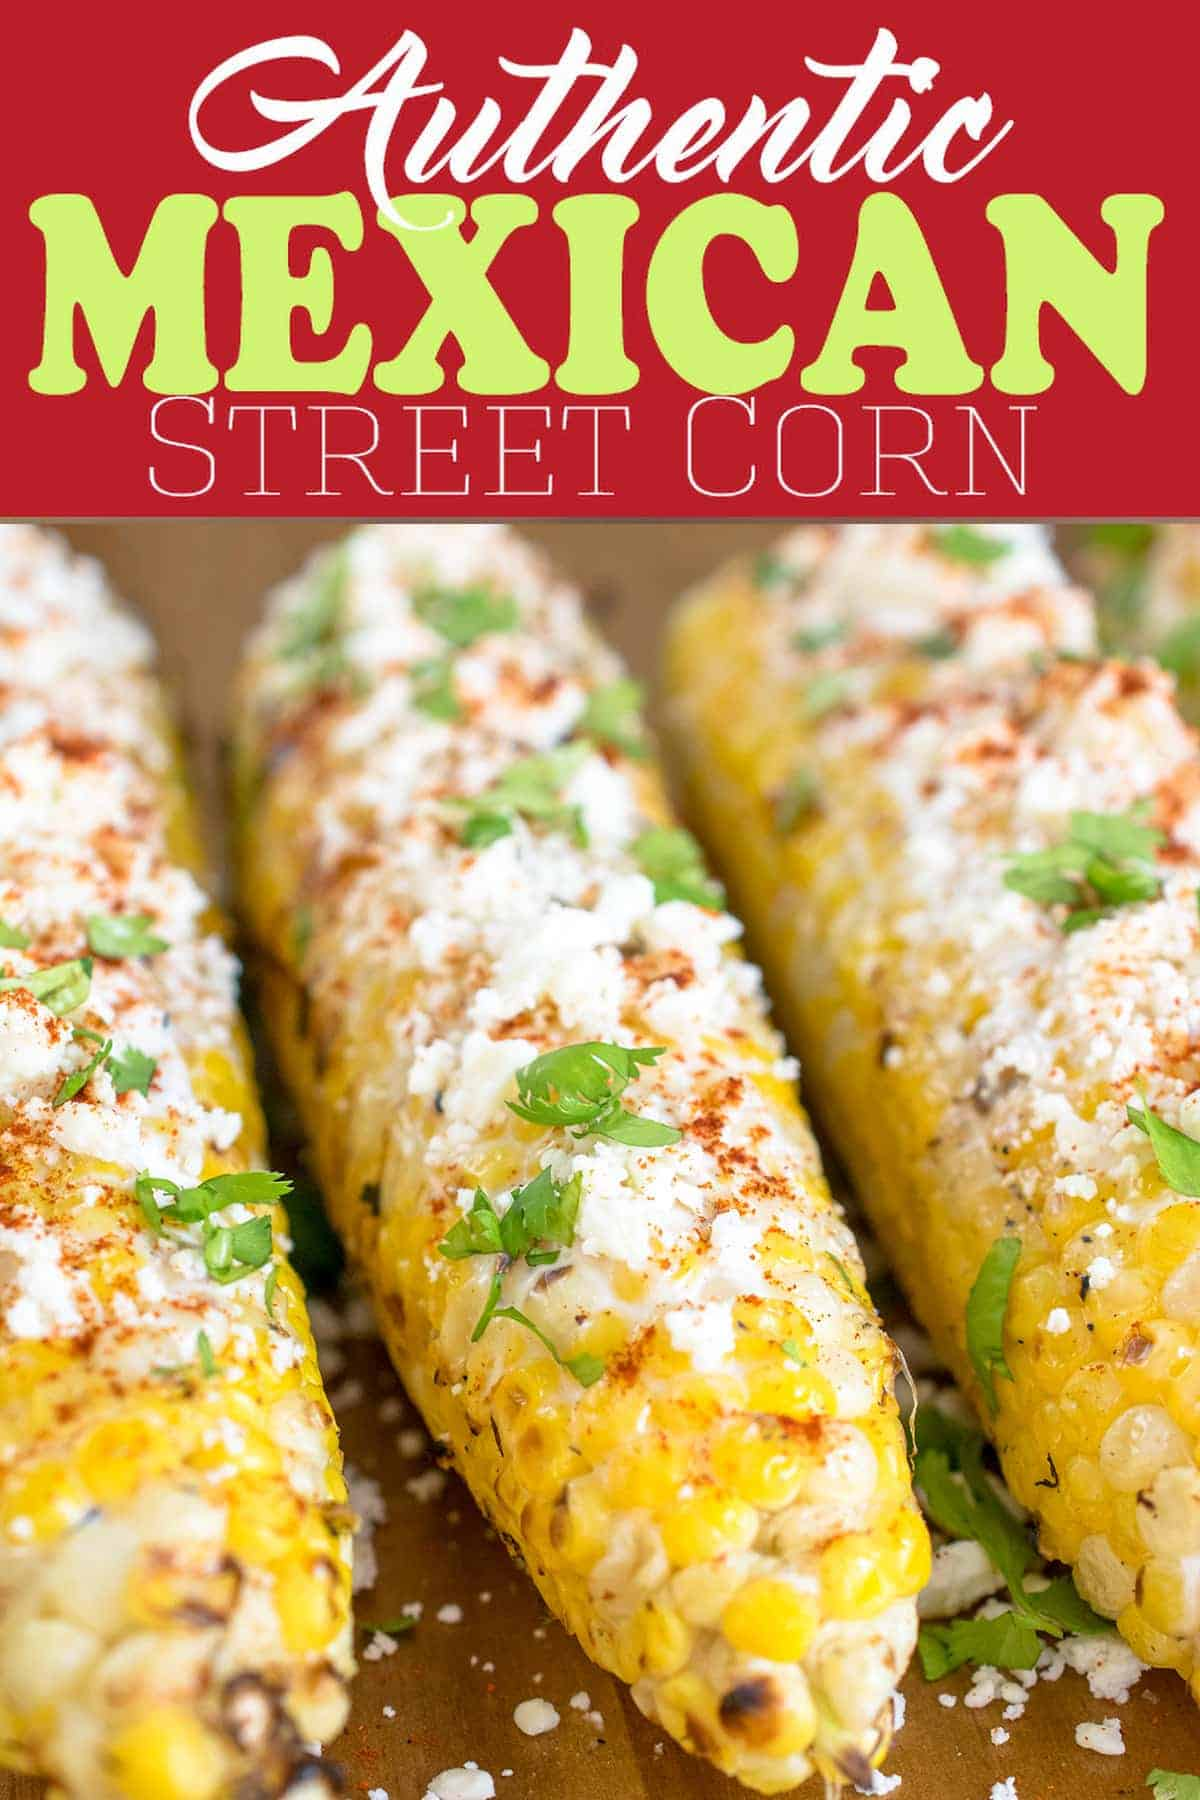 Mexican Street Corn- The best summer bbq side dish and on Cinco De Mayo! Add a creamy garlic spread and topped with cheese and cilantro, this corn is not only beautiful but a delish recipe! #cornonthecob #mexicanstreetcorn #cravingsomecreativity #mexicanfood #cincodemayo